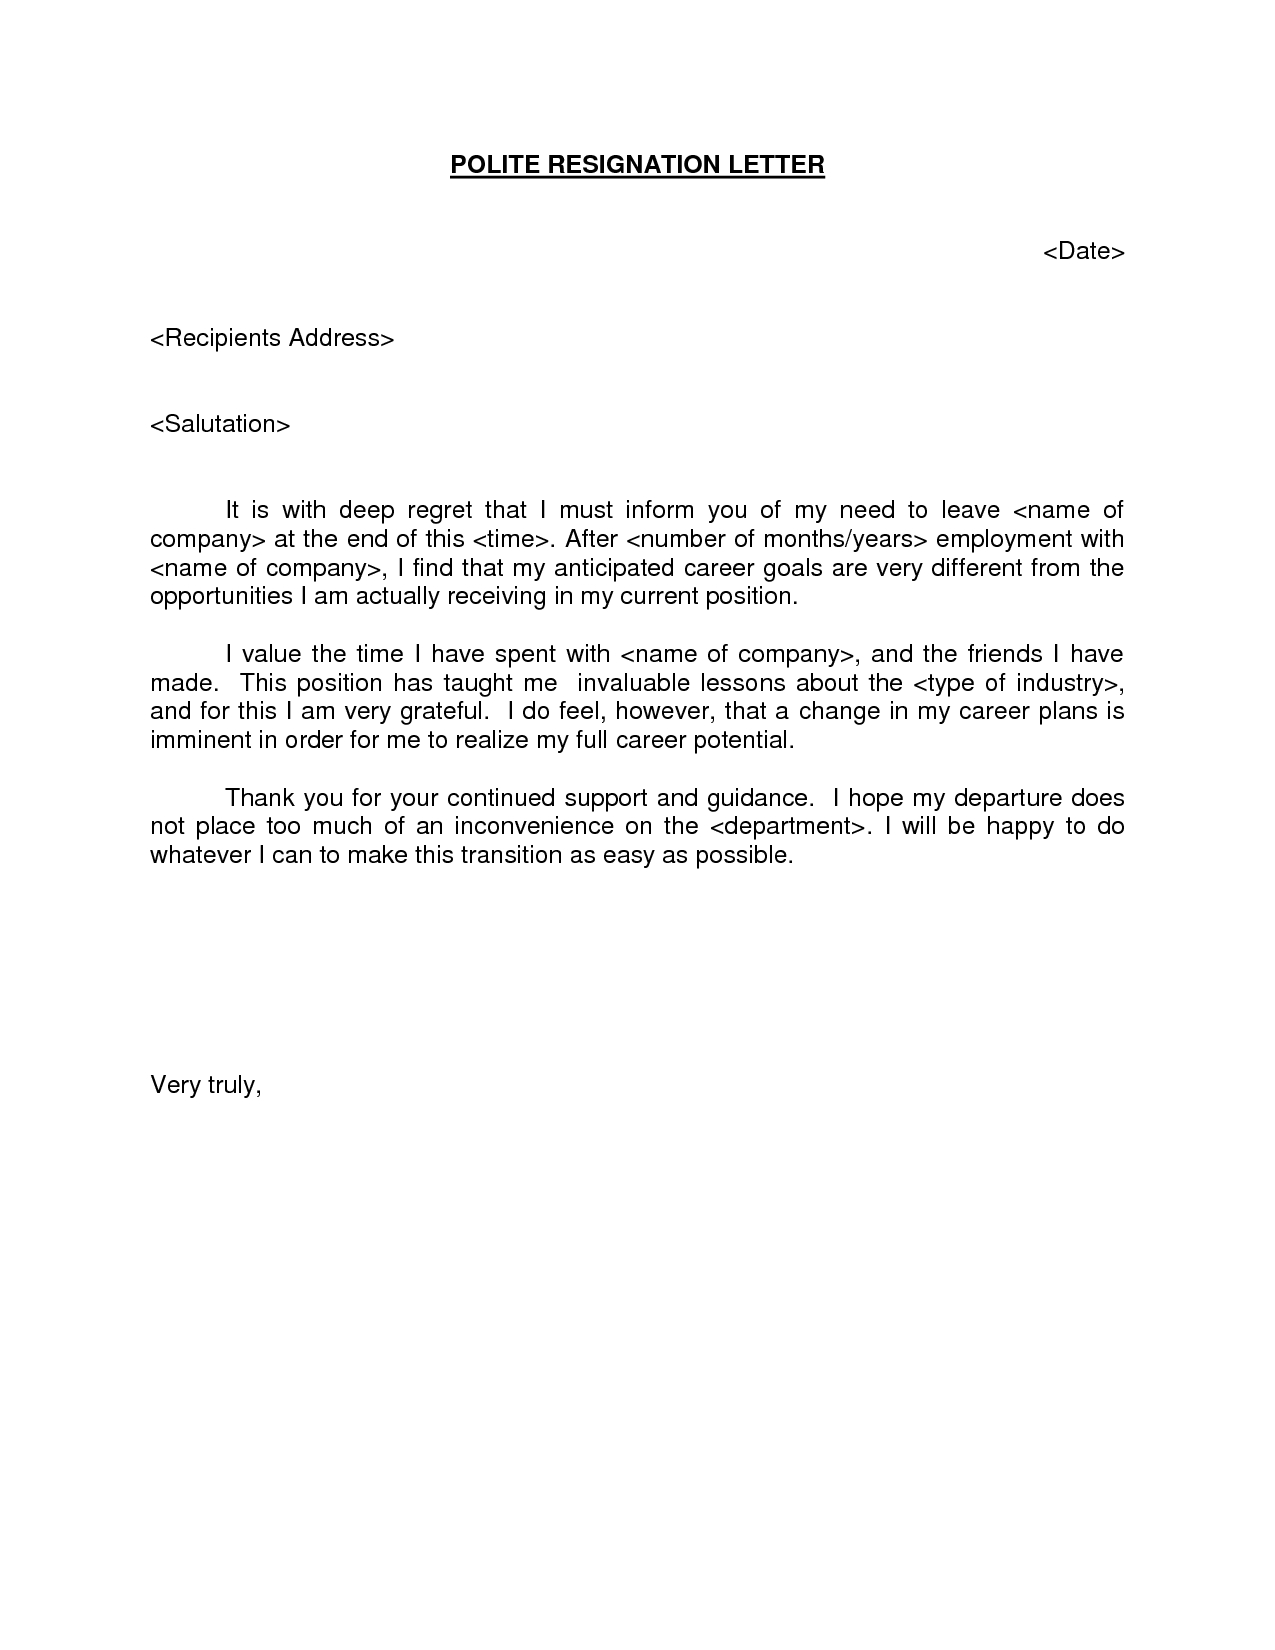 resignation letter template free example-POLITE RESIGNATION LETTER BestdealformoneyWriting A Letter Resignation Email Letter Sample 3-o